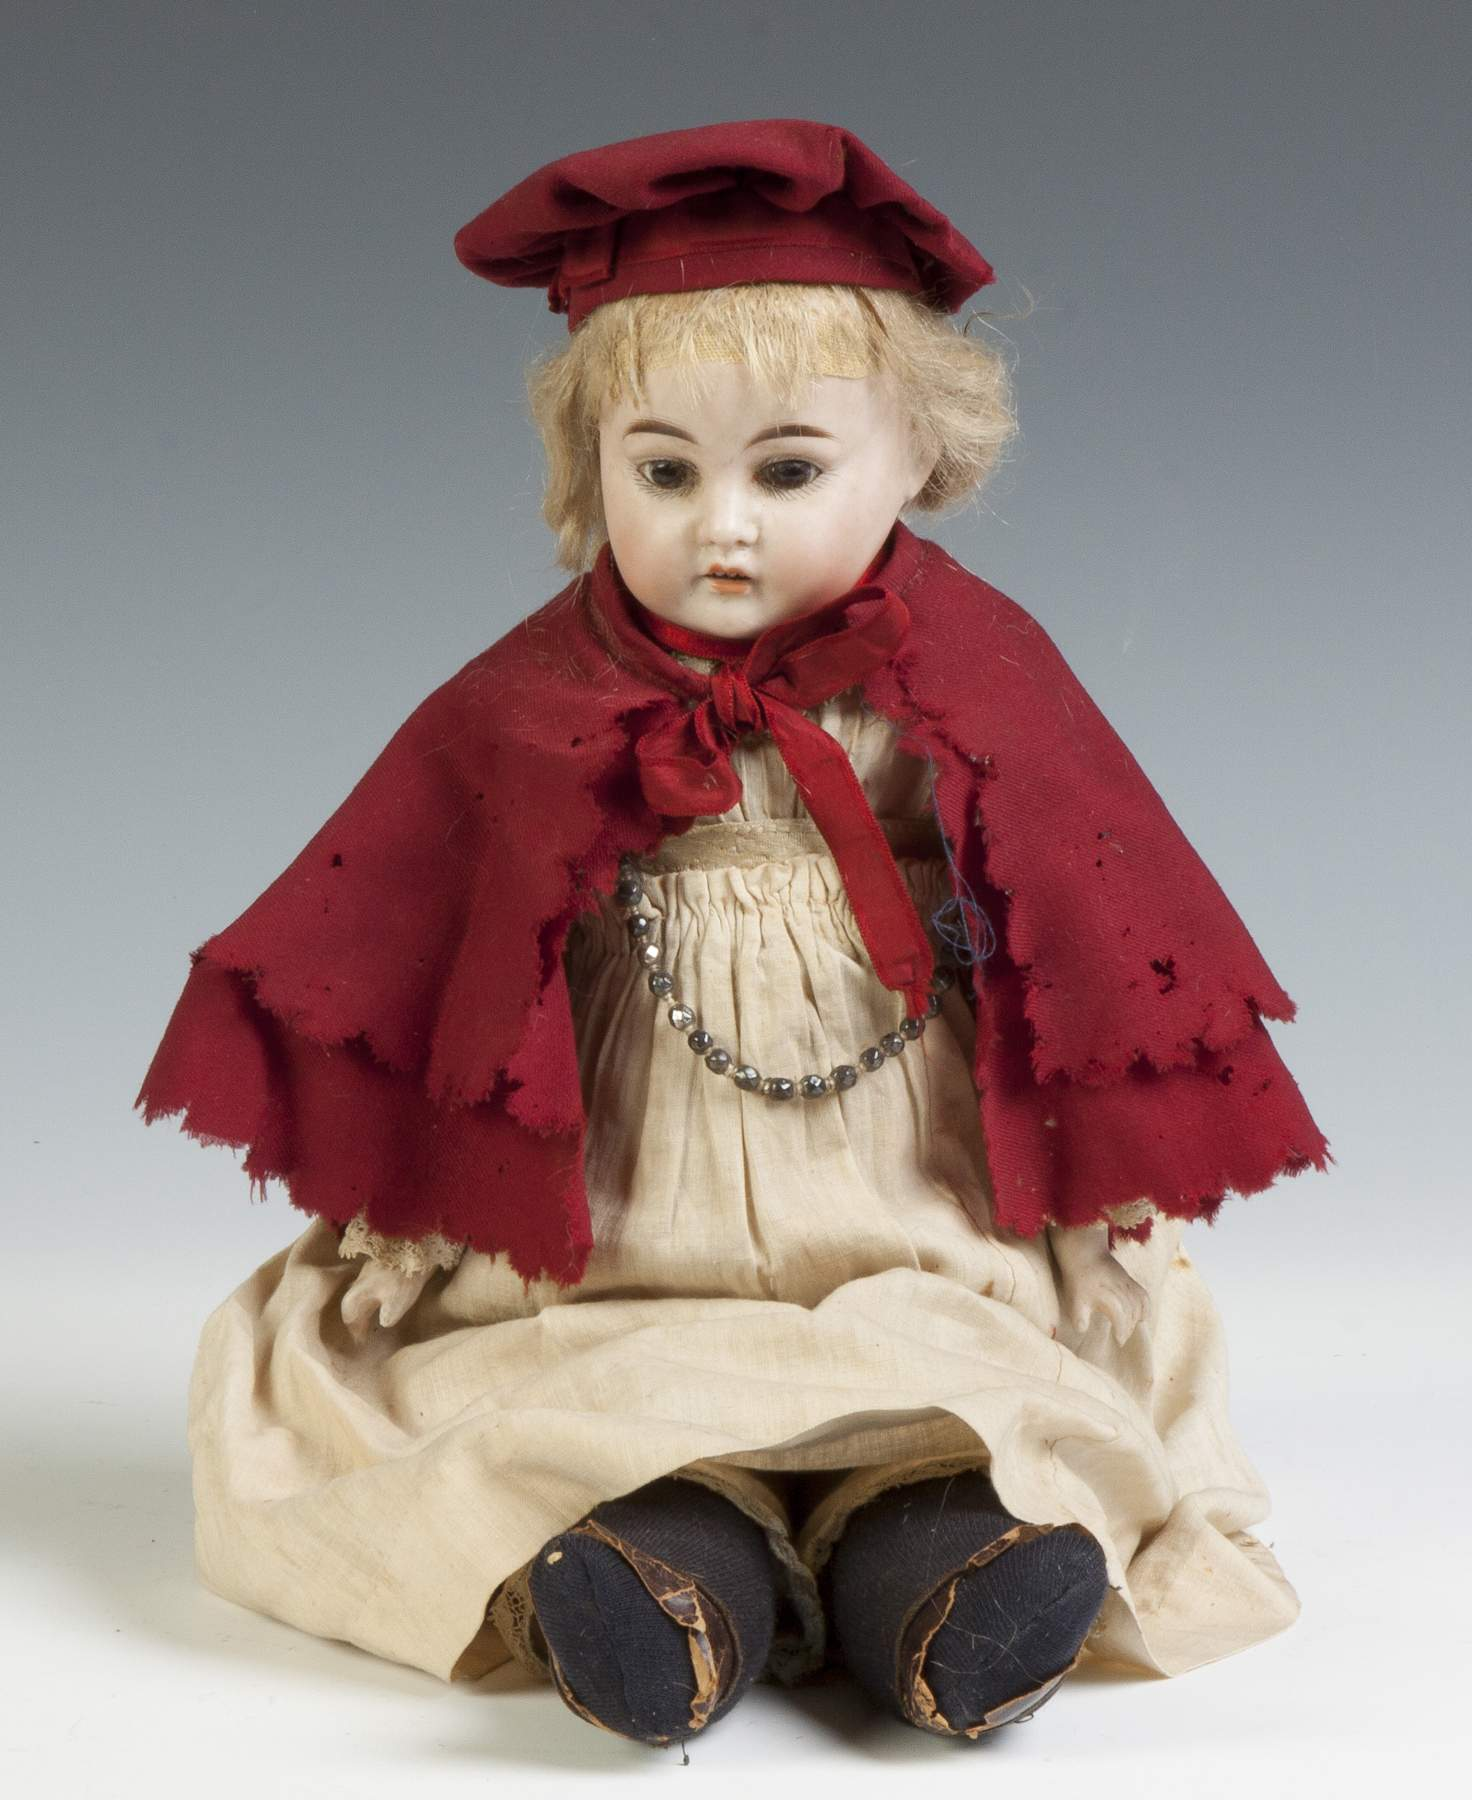 """dating armand marseille doll Early armand marseille 1894 antique bisque doll for french trade 26 kathy libraty's antiques $650 usd armand marseille 7 bisque head composition body character toddler everton antiques armand marseille 7 bisque head composition body character toddler everton antiques $263 usd sale 8"""" all antique."""